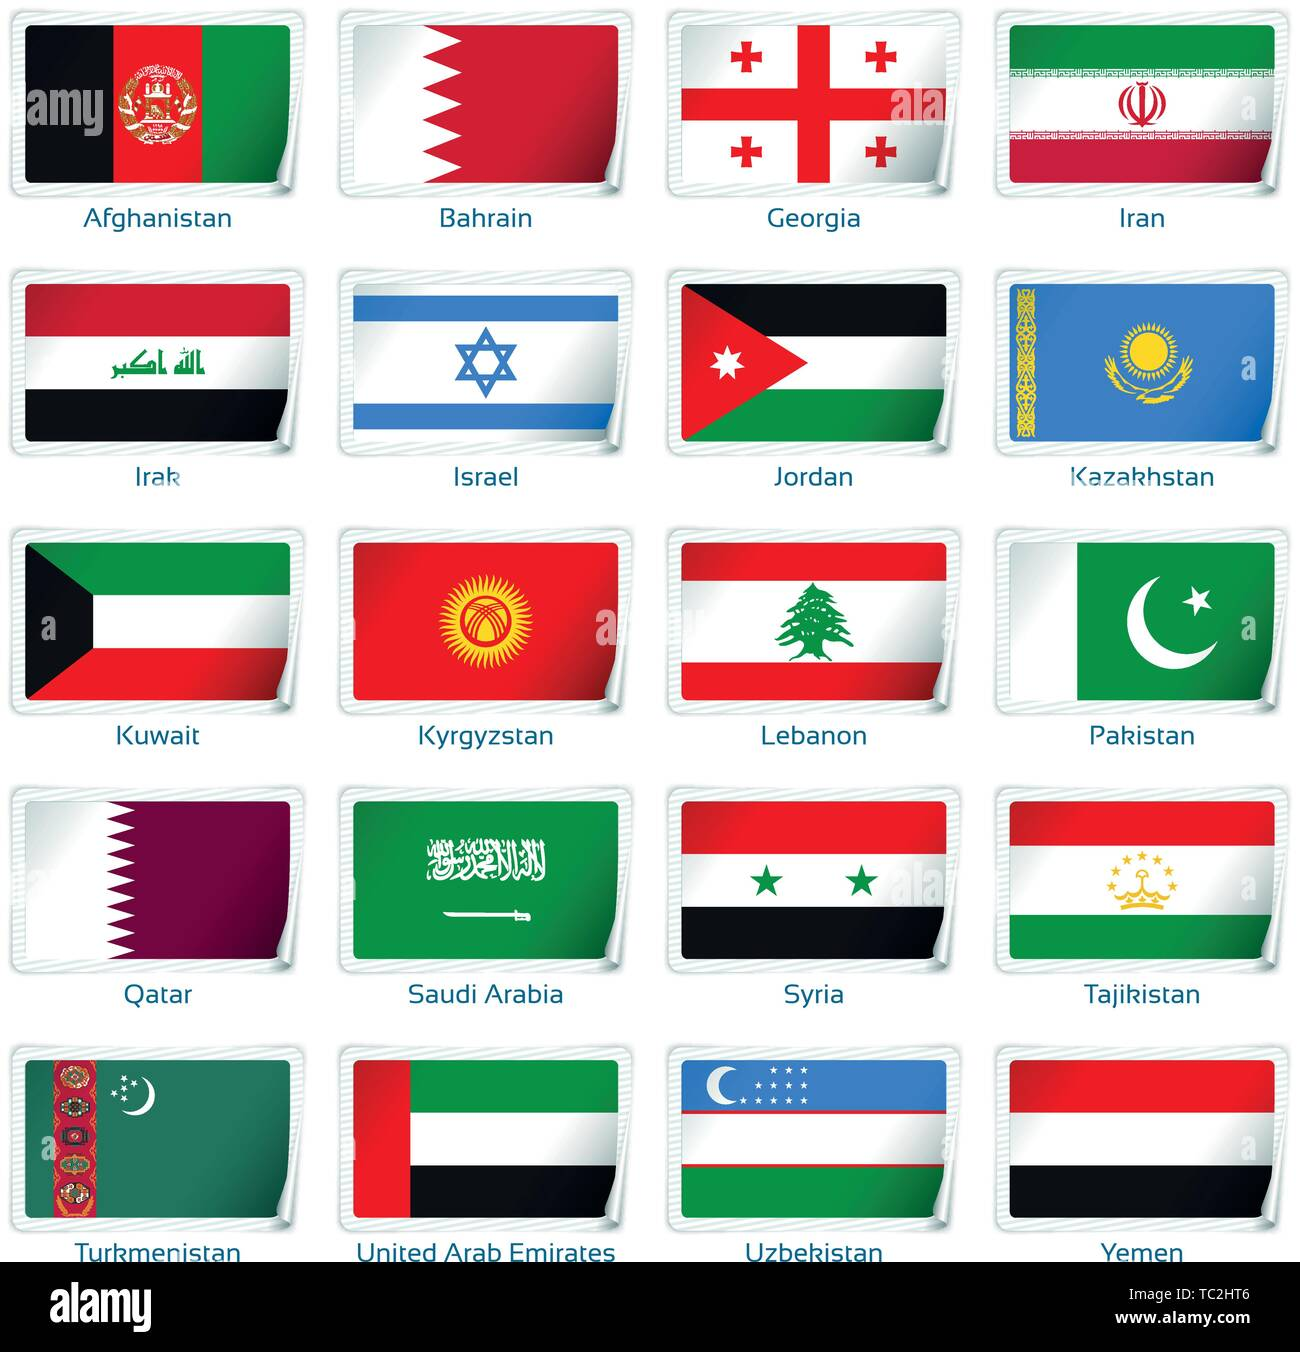 Sticker flags Western Asia. Vector illustration. 3 layers. Shadows, flat flag you can use it separately, sticker. Collection of 220 world flags. Accurate colors. Easy changes. - Stock Vector